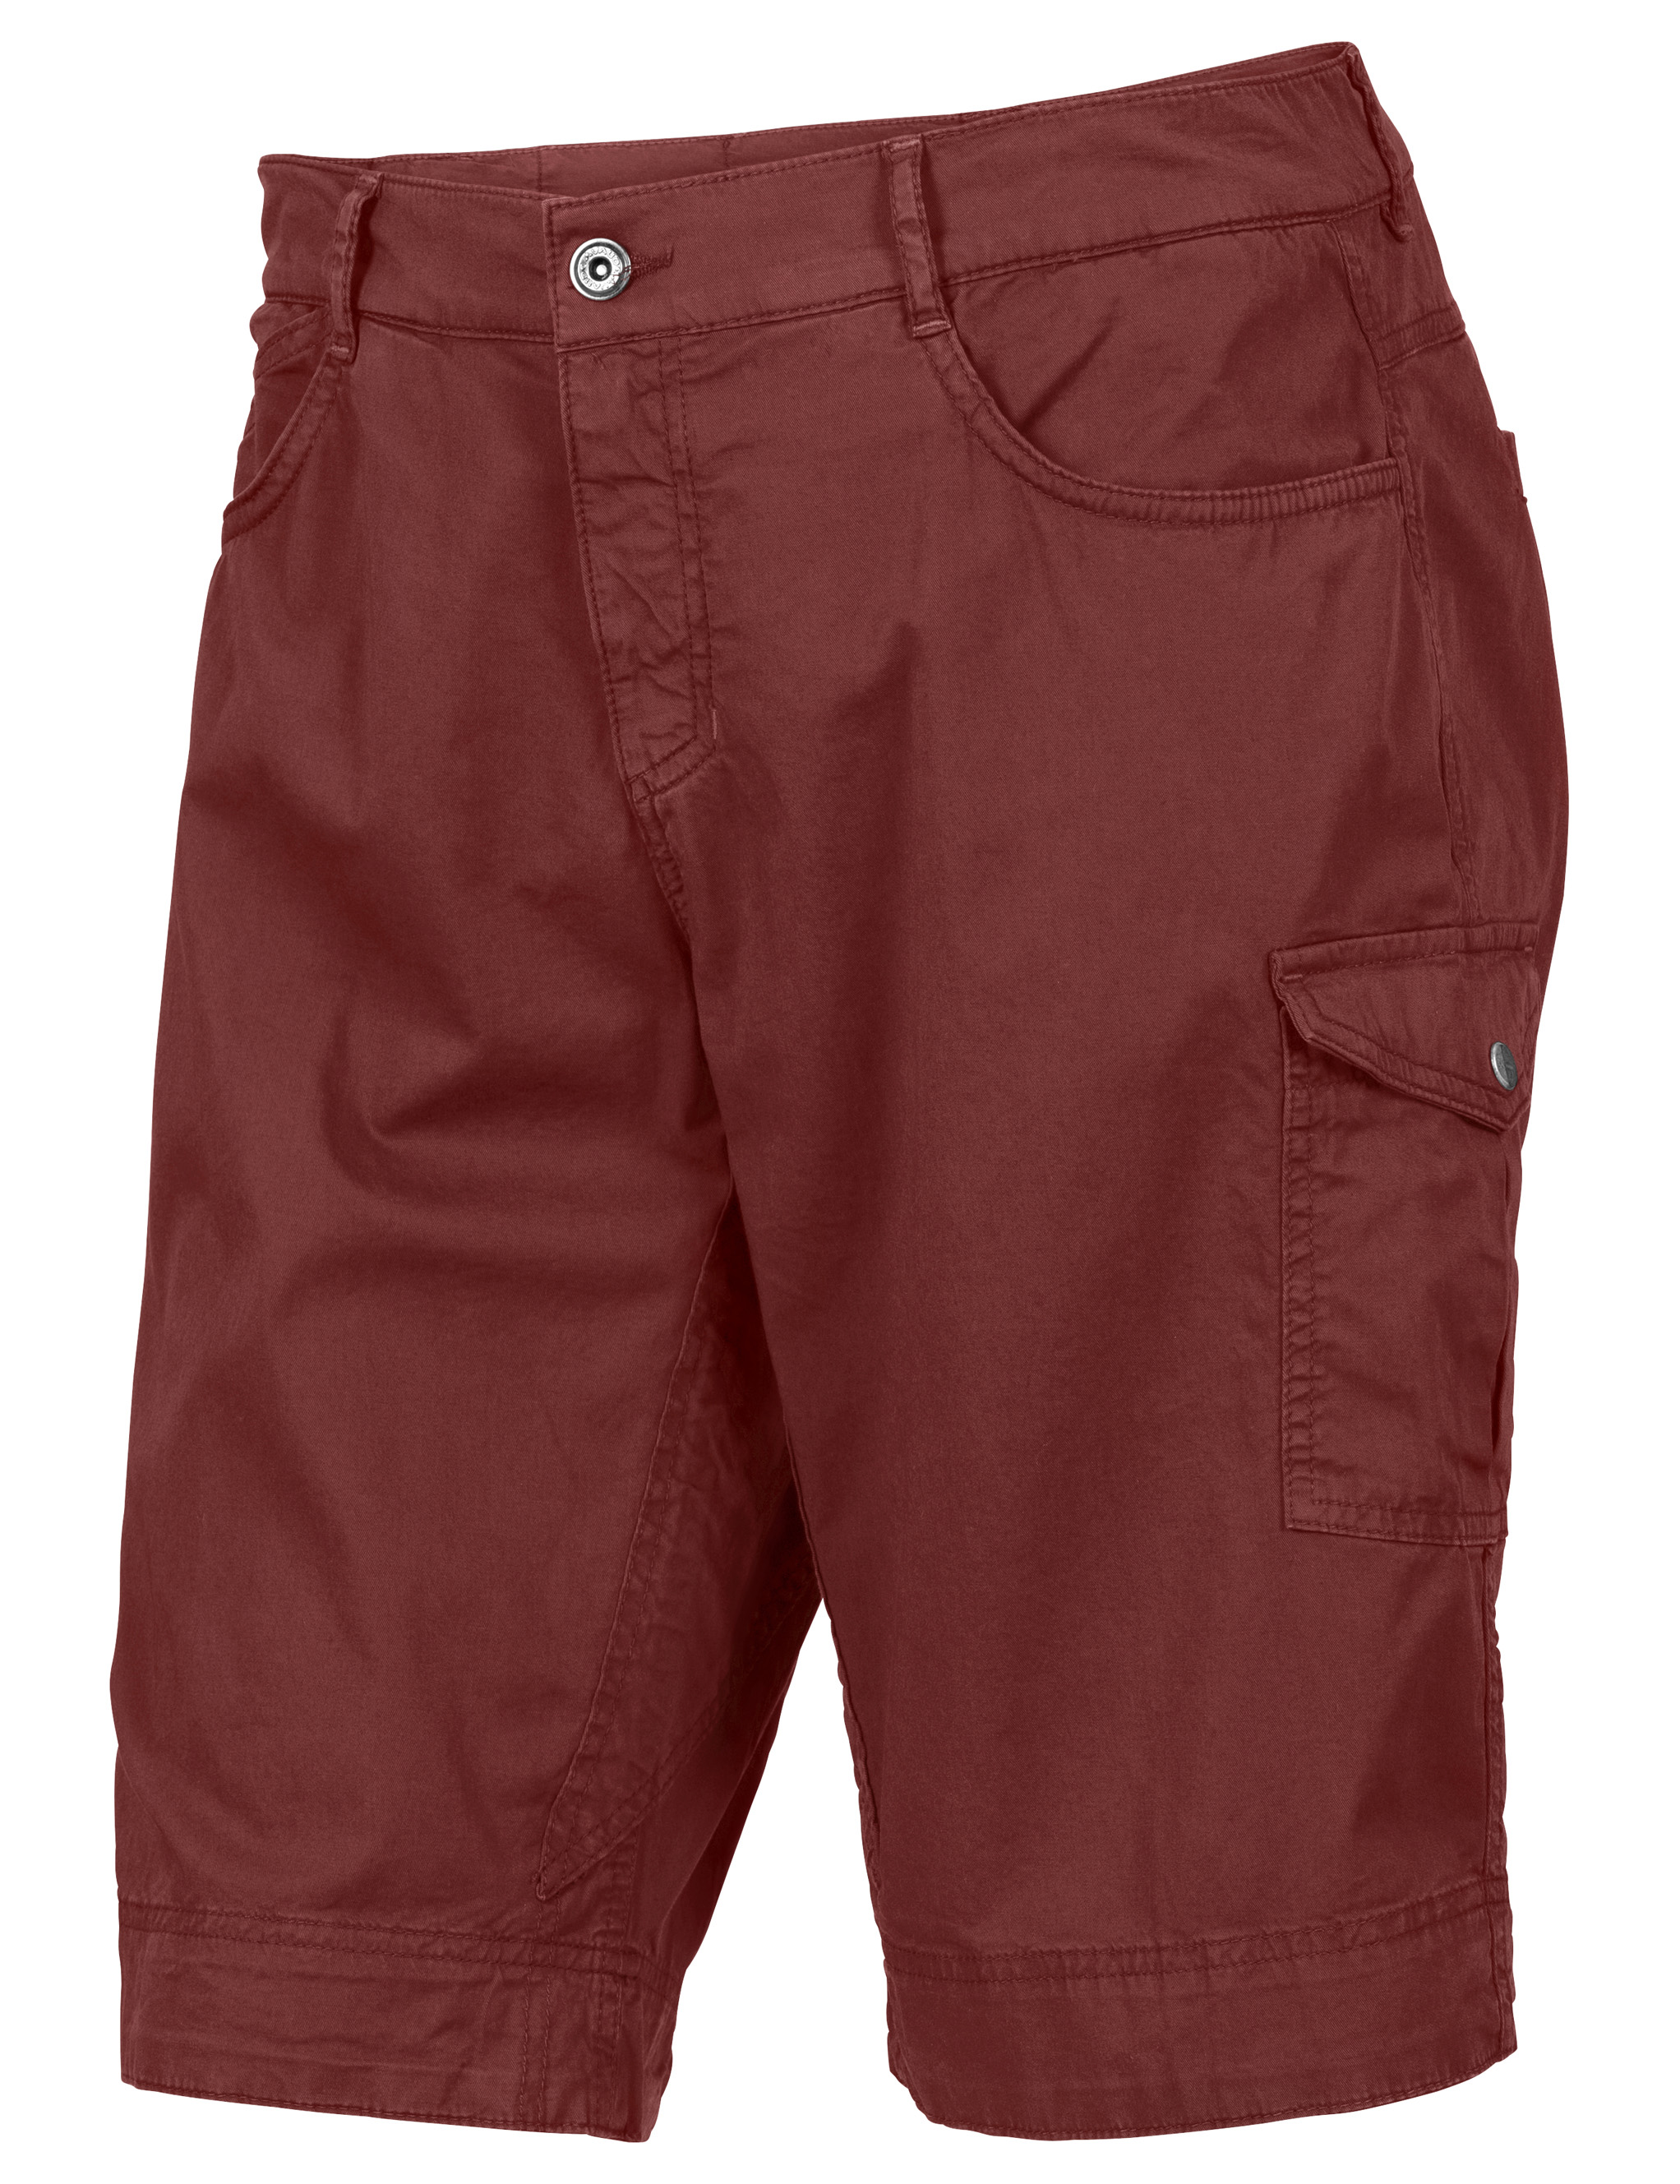 VAUDE Men´s Cyclist Shorts cherrywood Größe L - schneider-sports